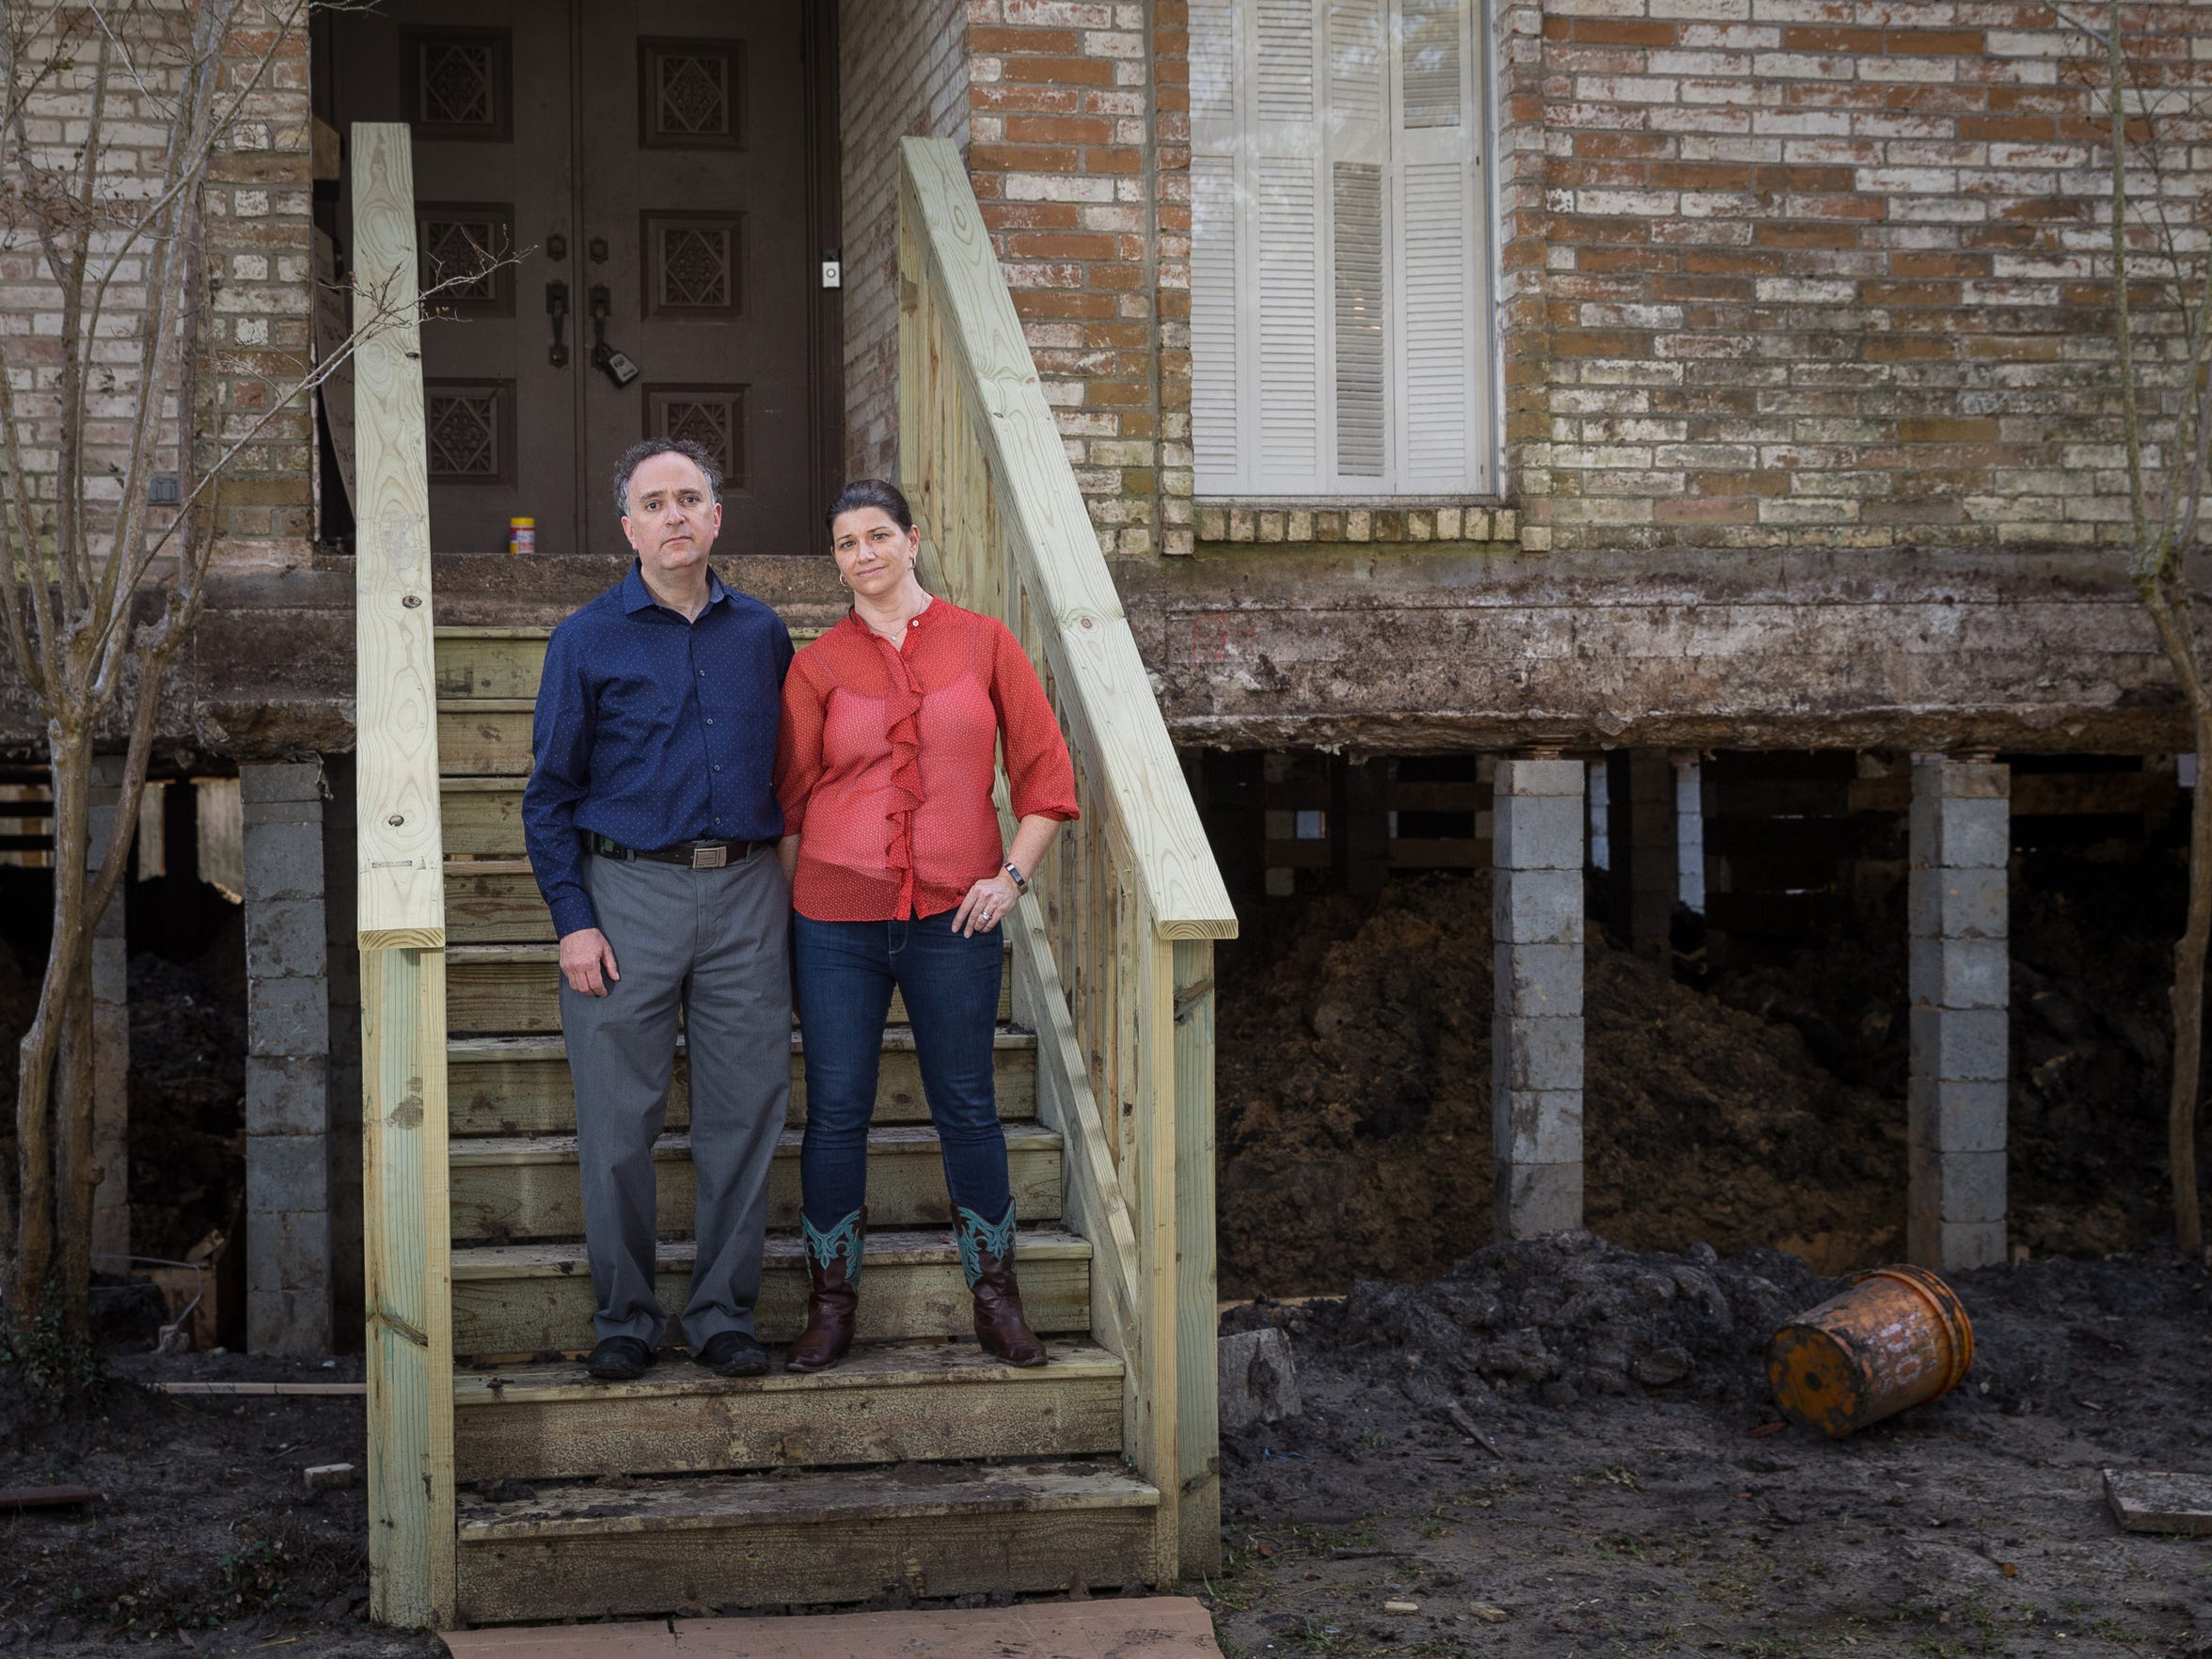 Dave Schwartz and Marni Axelrad, husband and wife, stand for a portrait at their home in Houston on Friday, Feb. 23, 2018. The house is being repaired and elevated due to significant damage from Hurricane Harvey, but Schwartz and Axelrad hope to move back in sometime in March. (Loren Elliott for The Texas Tribune)